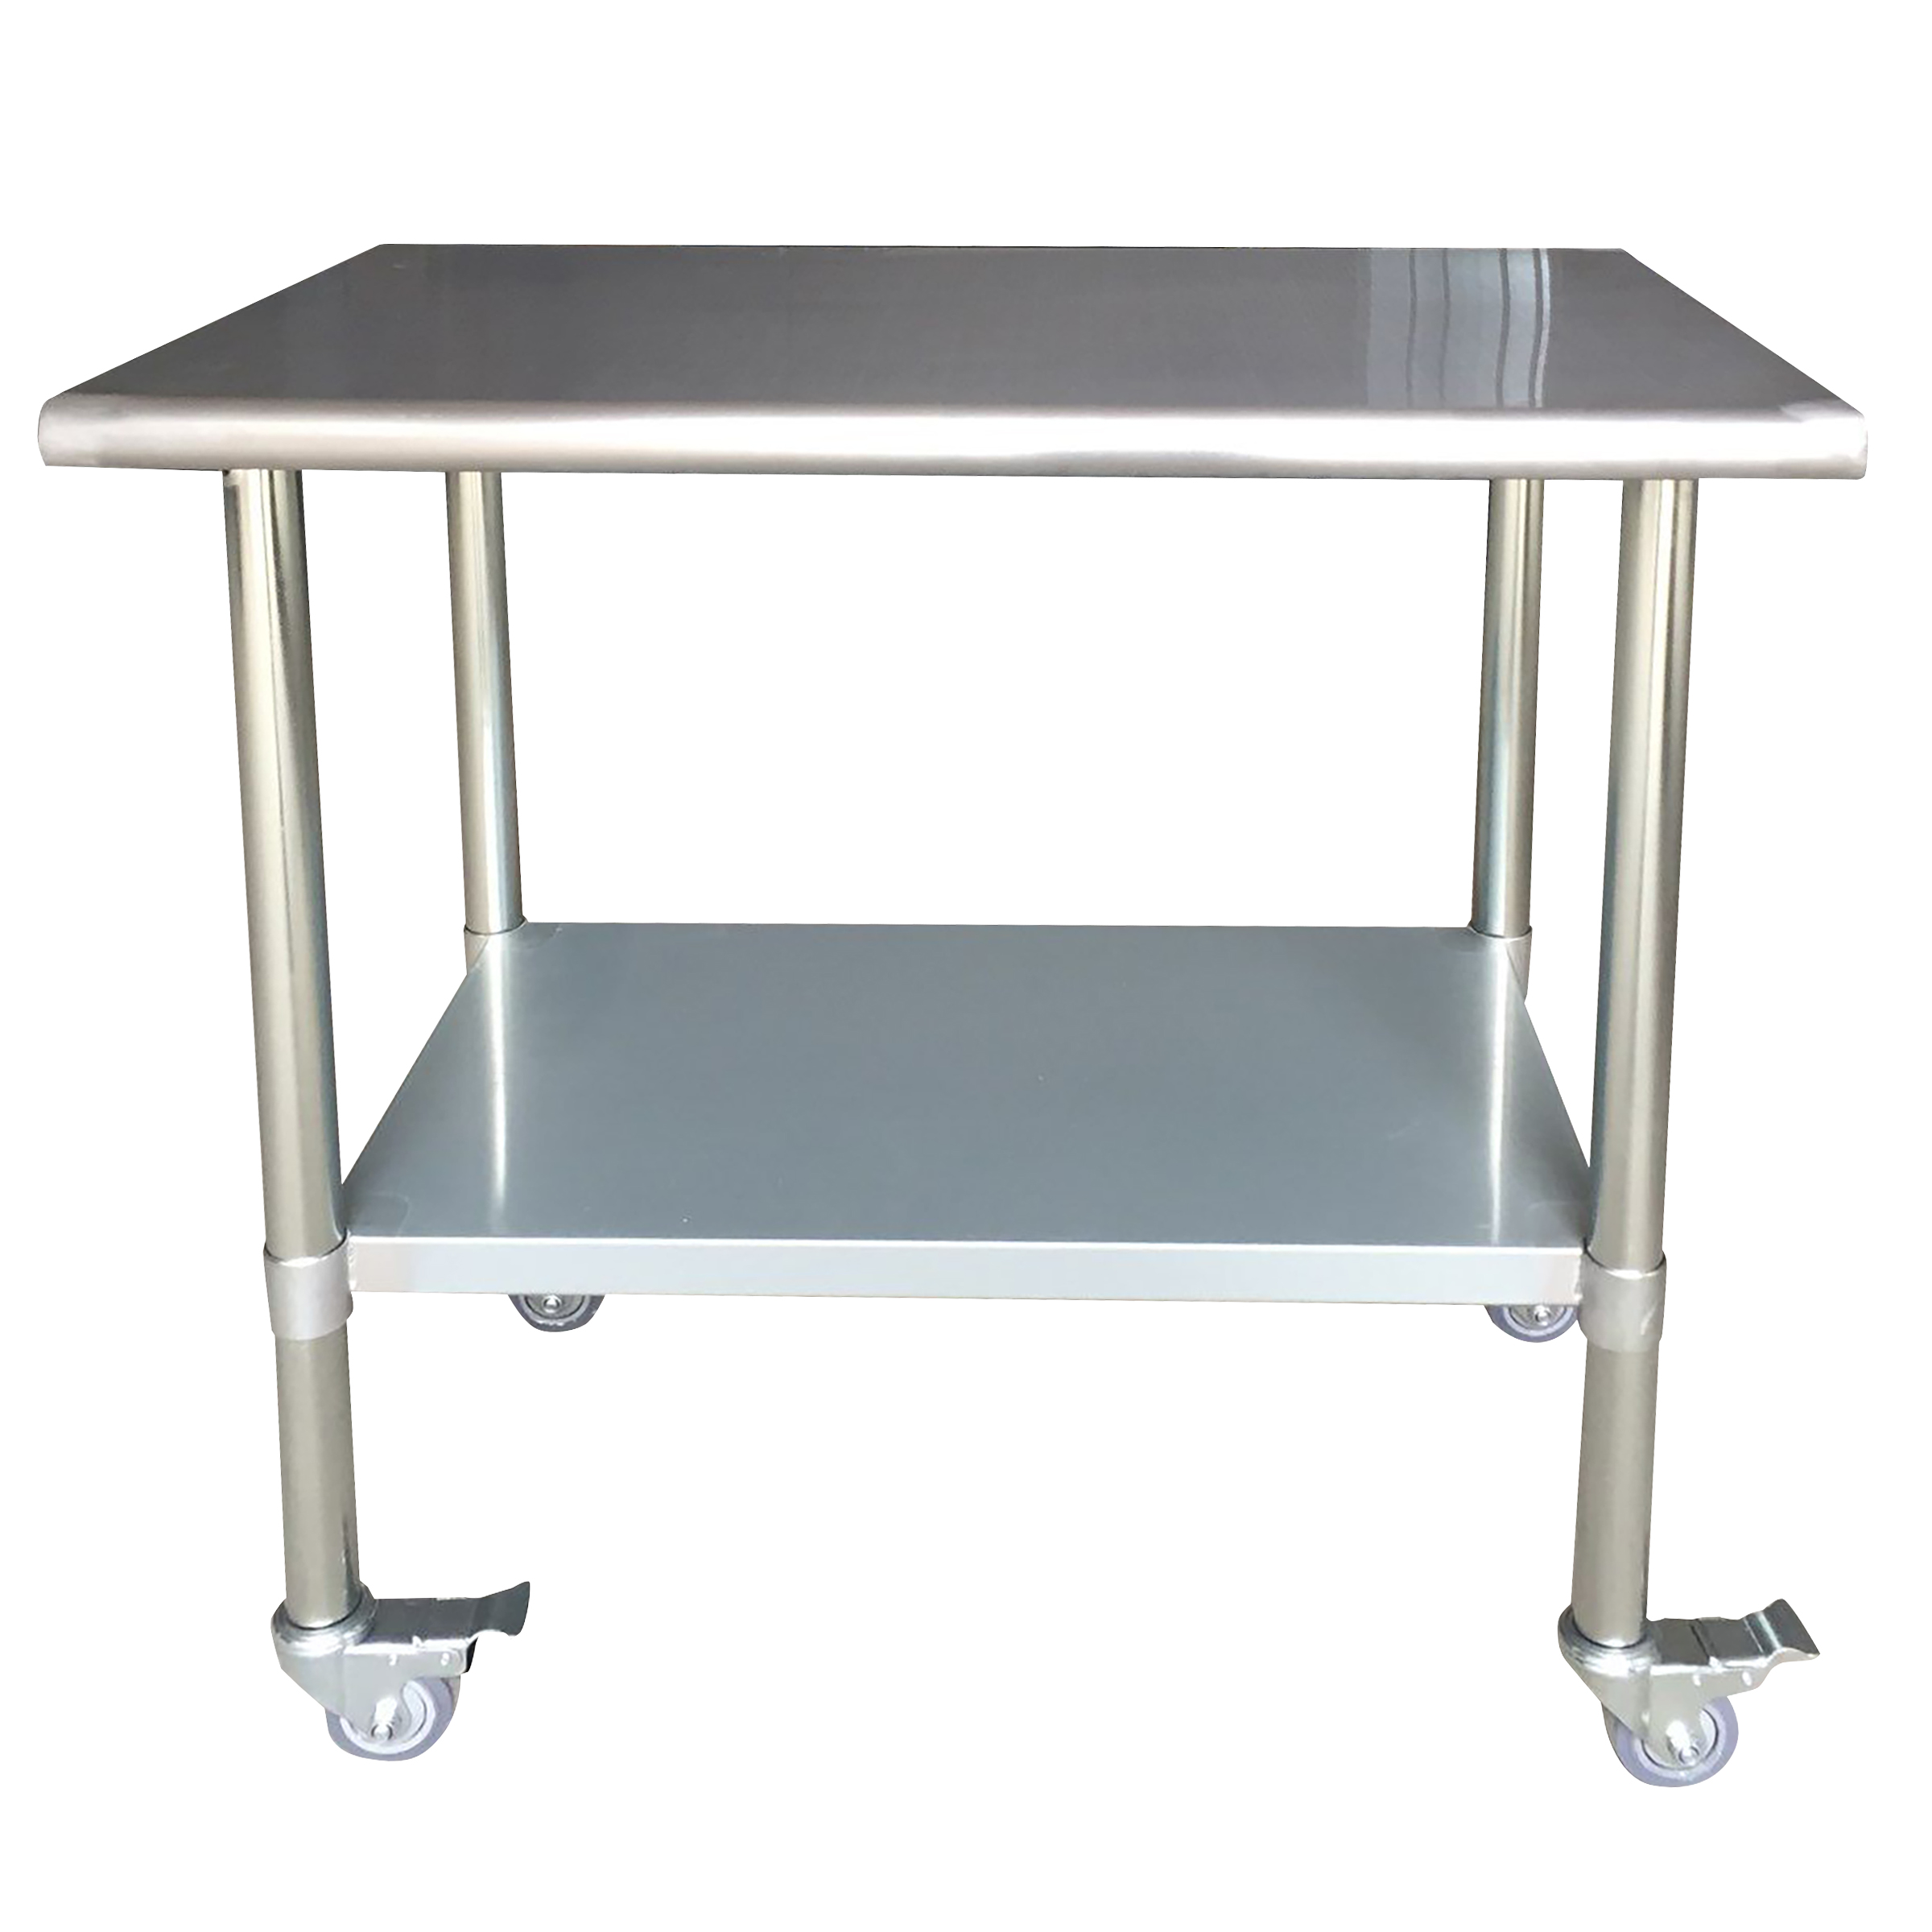 Stainless Steel Work Table with Casters 24 x 36 Inches